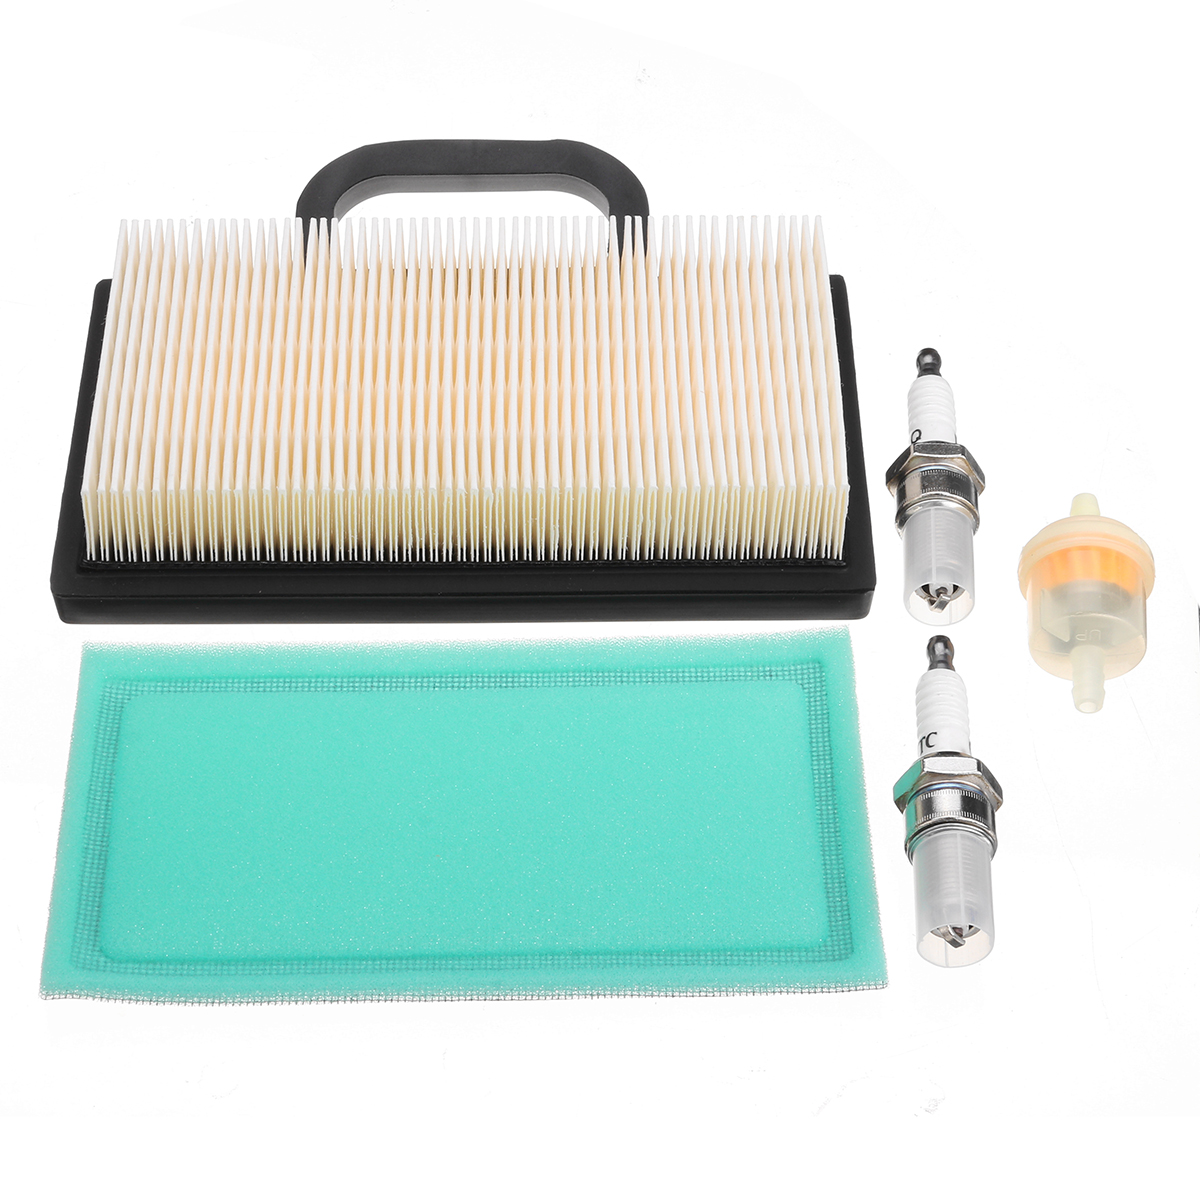 5 in 1 Lawn Mower Air Filter For Briggs&Stratton 499486